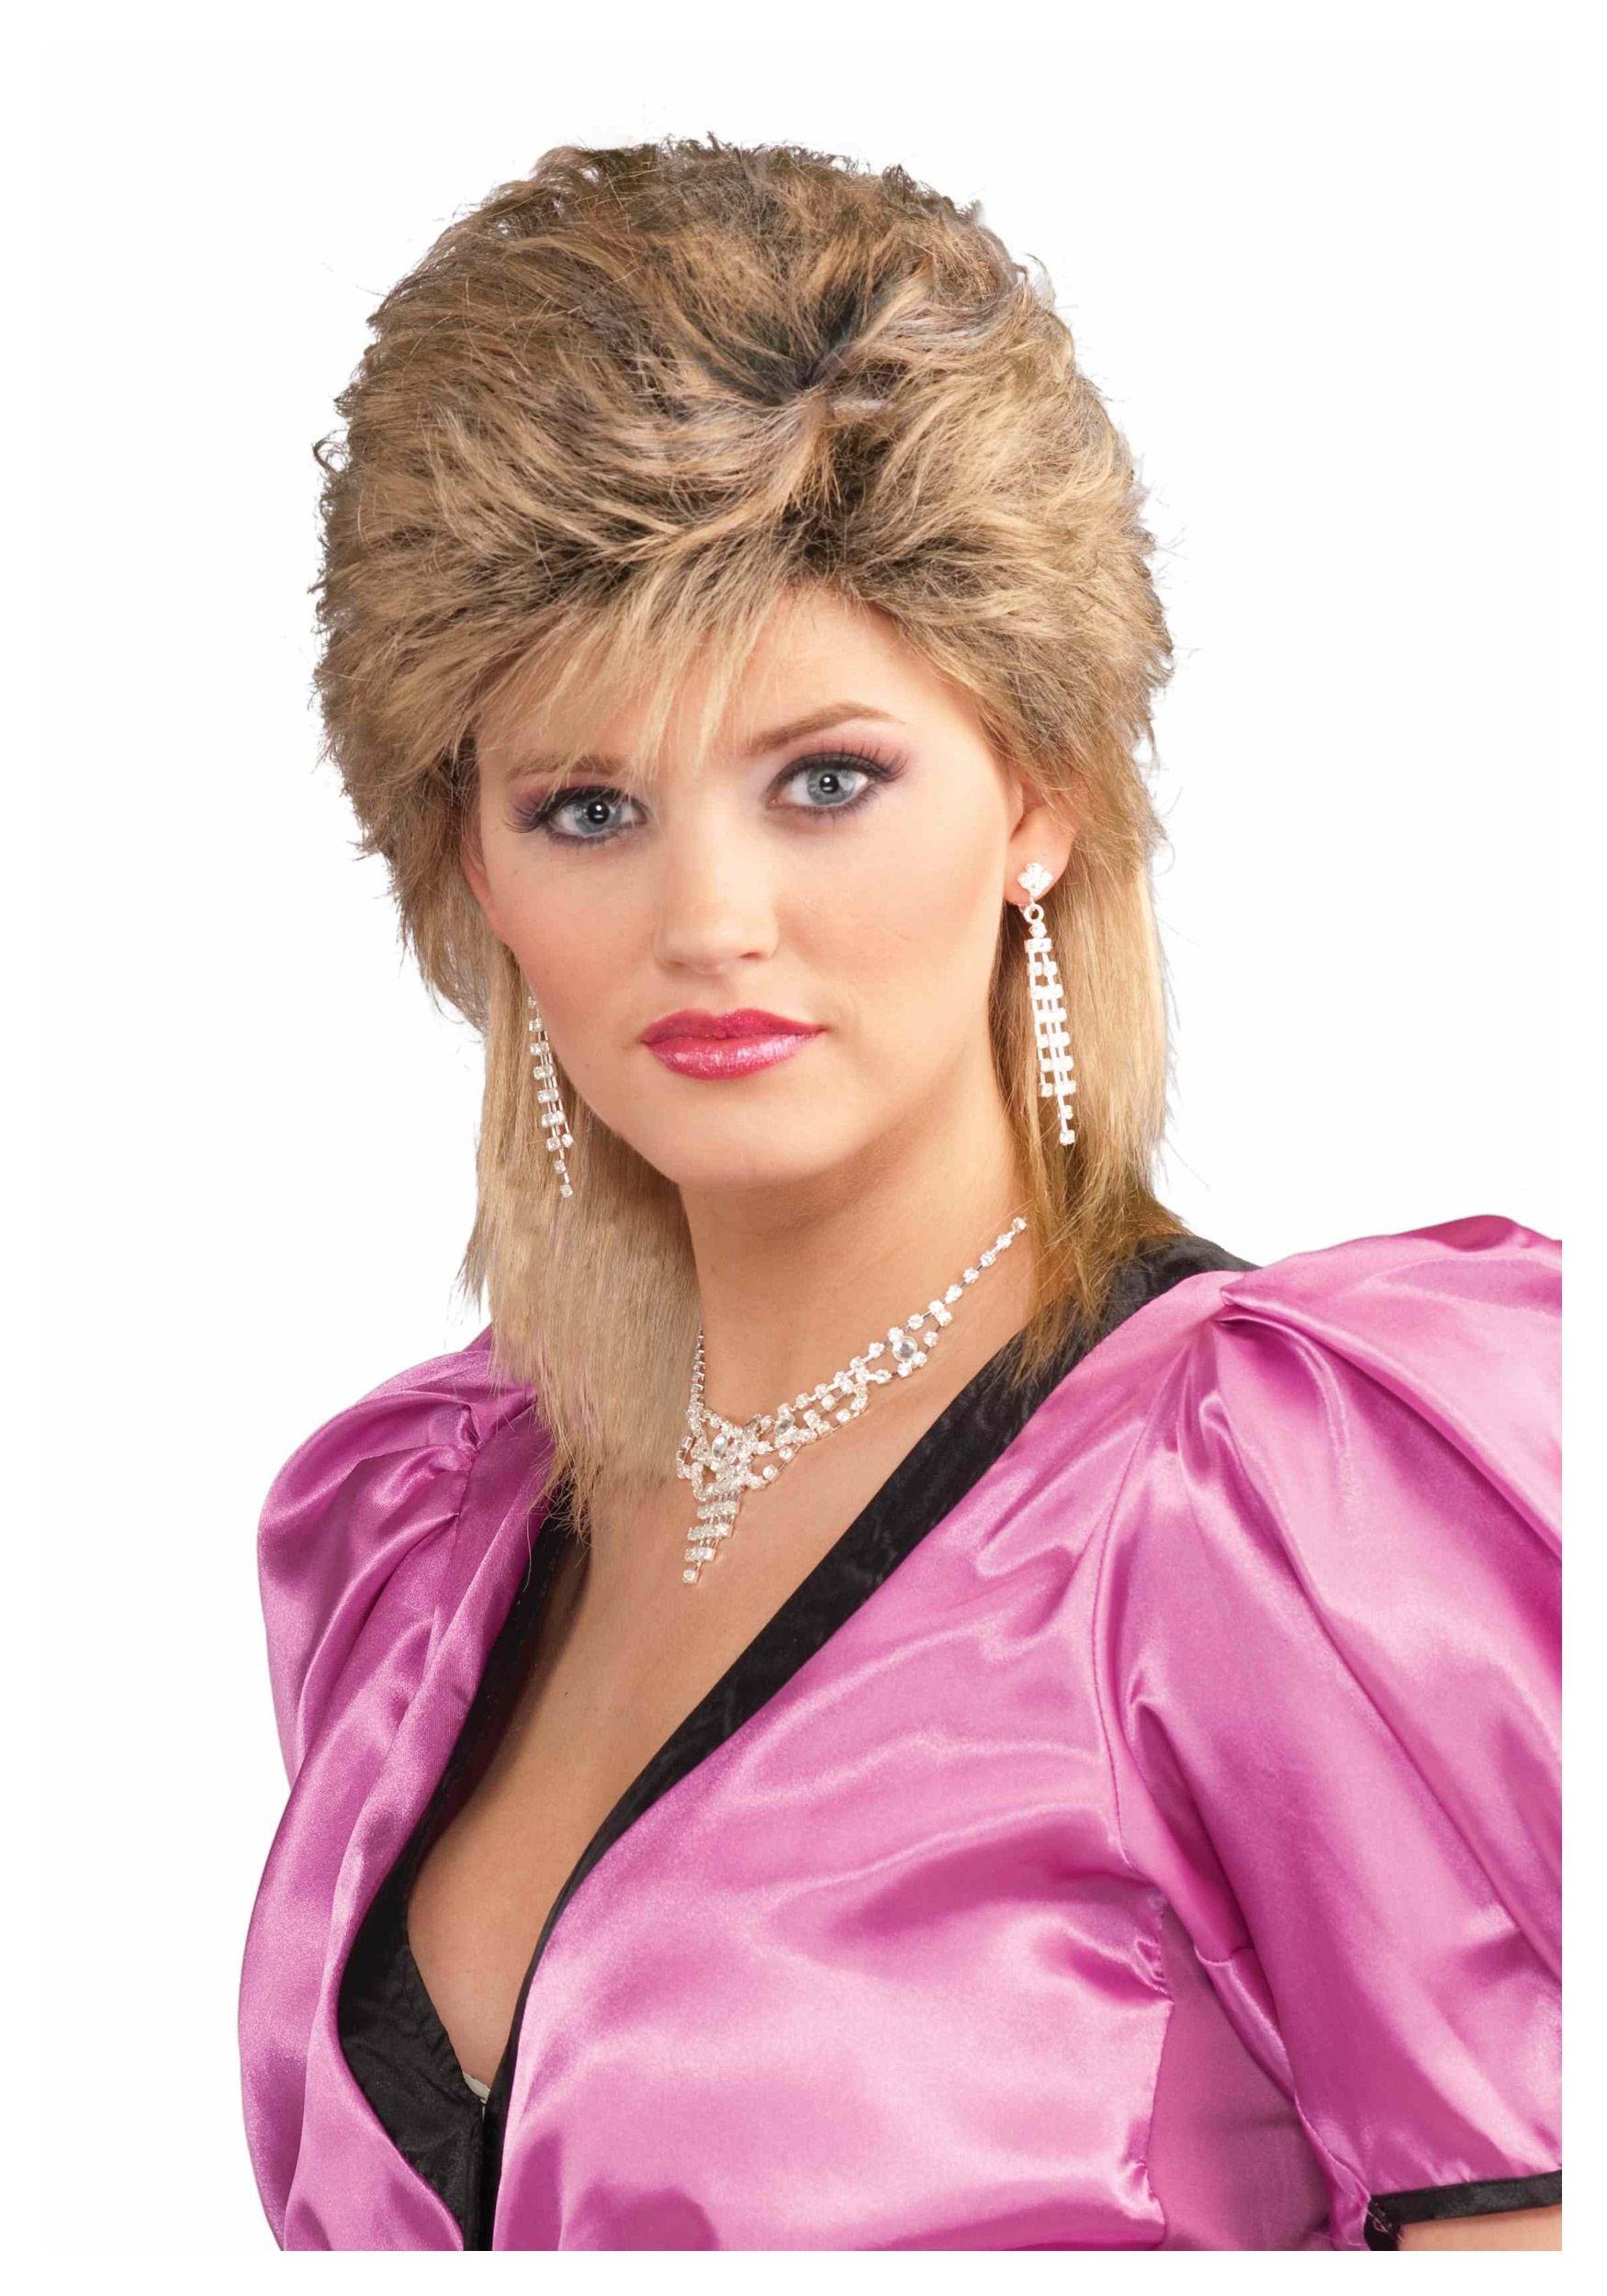 80s hairstyles for girls - HD 1750×2500